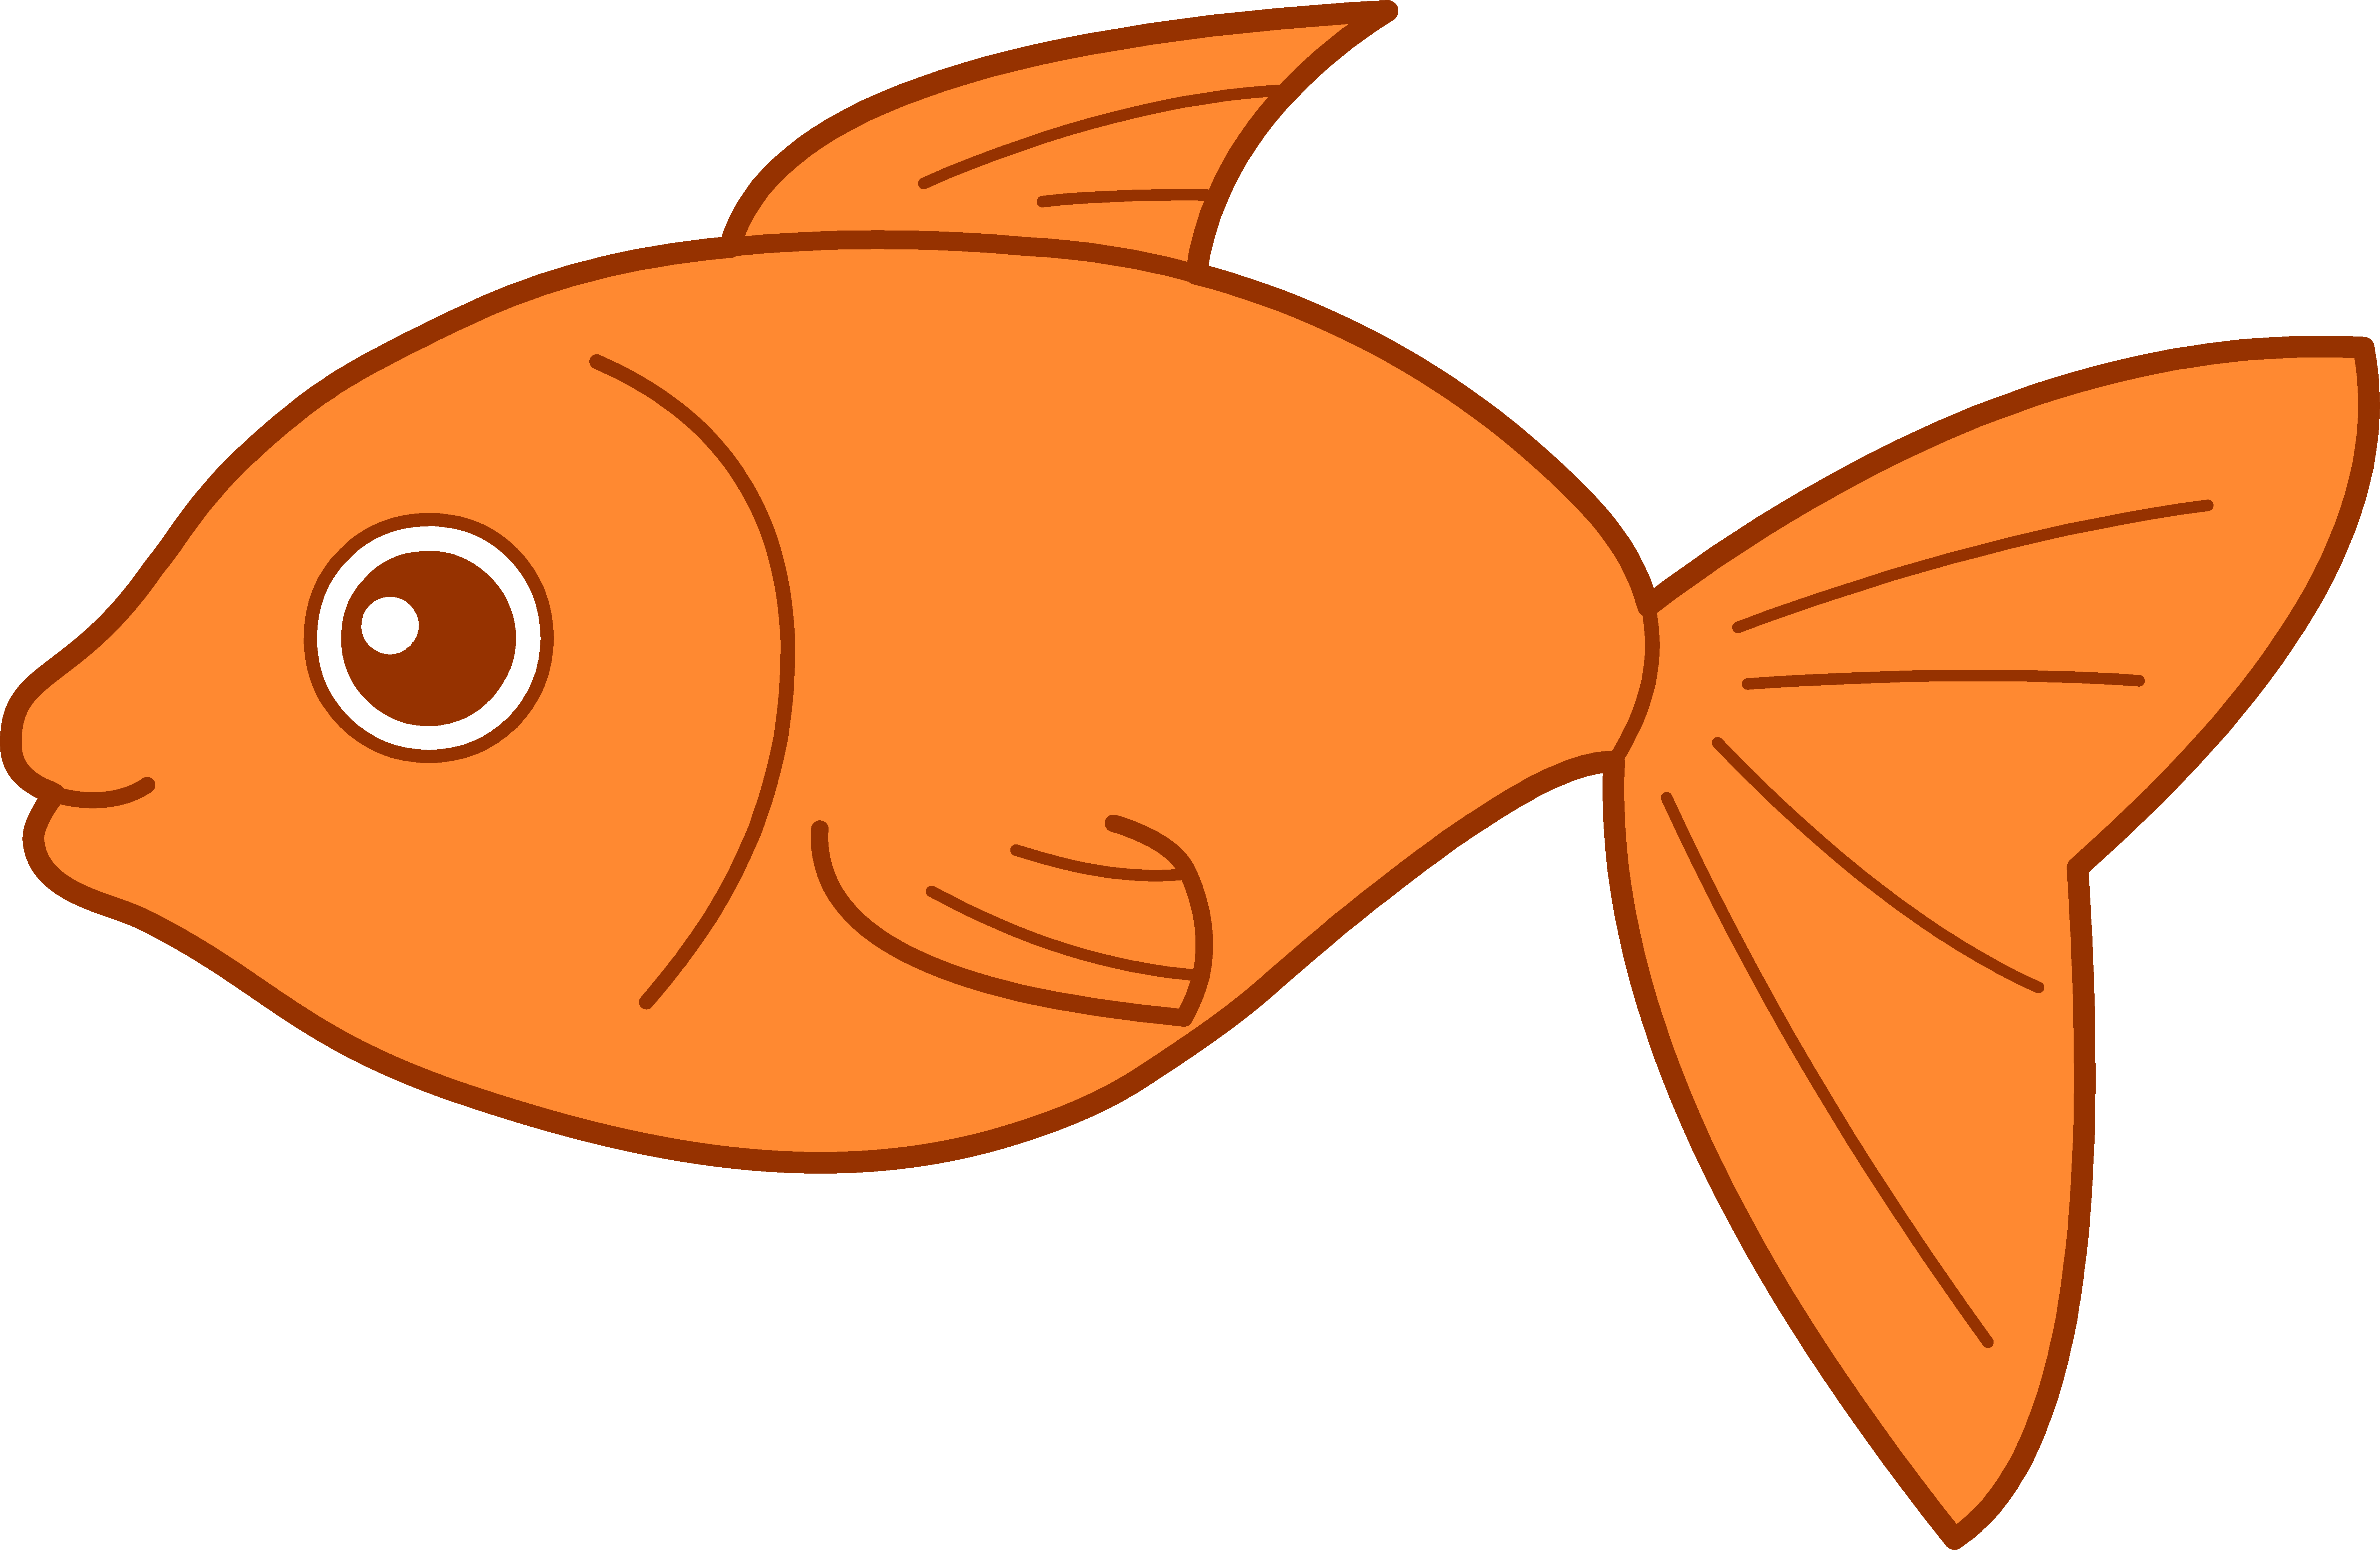 clipart fish images clipart panda free clipart images